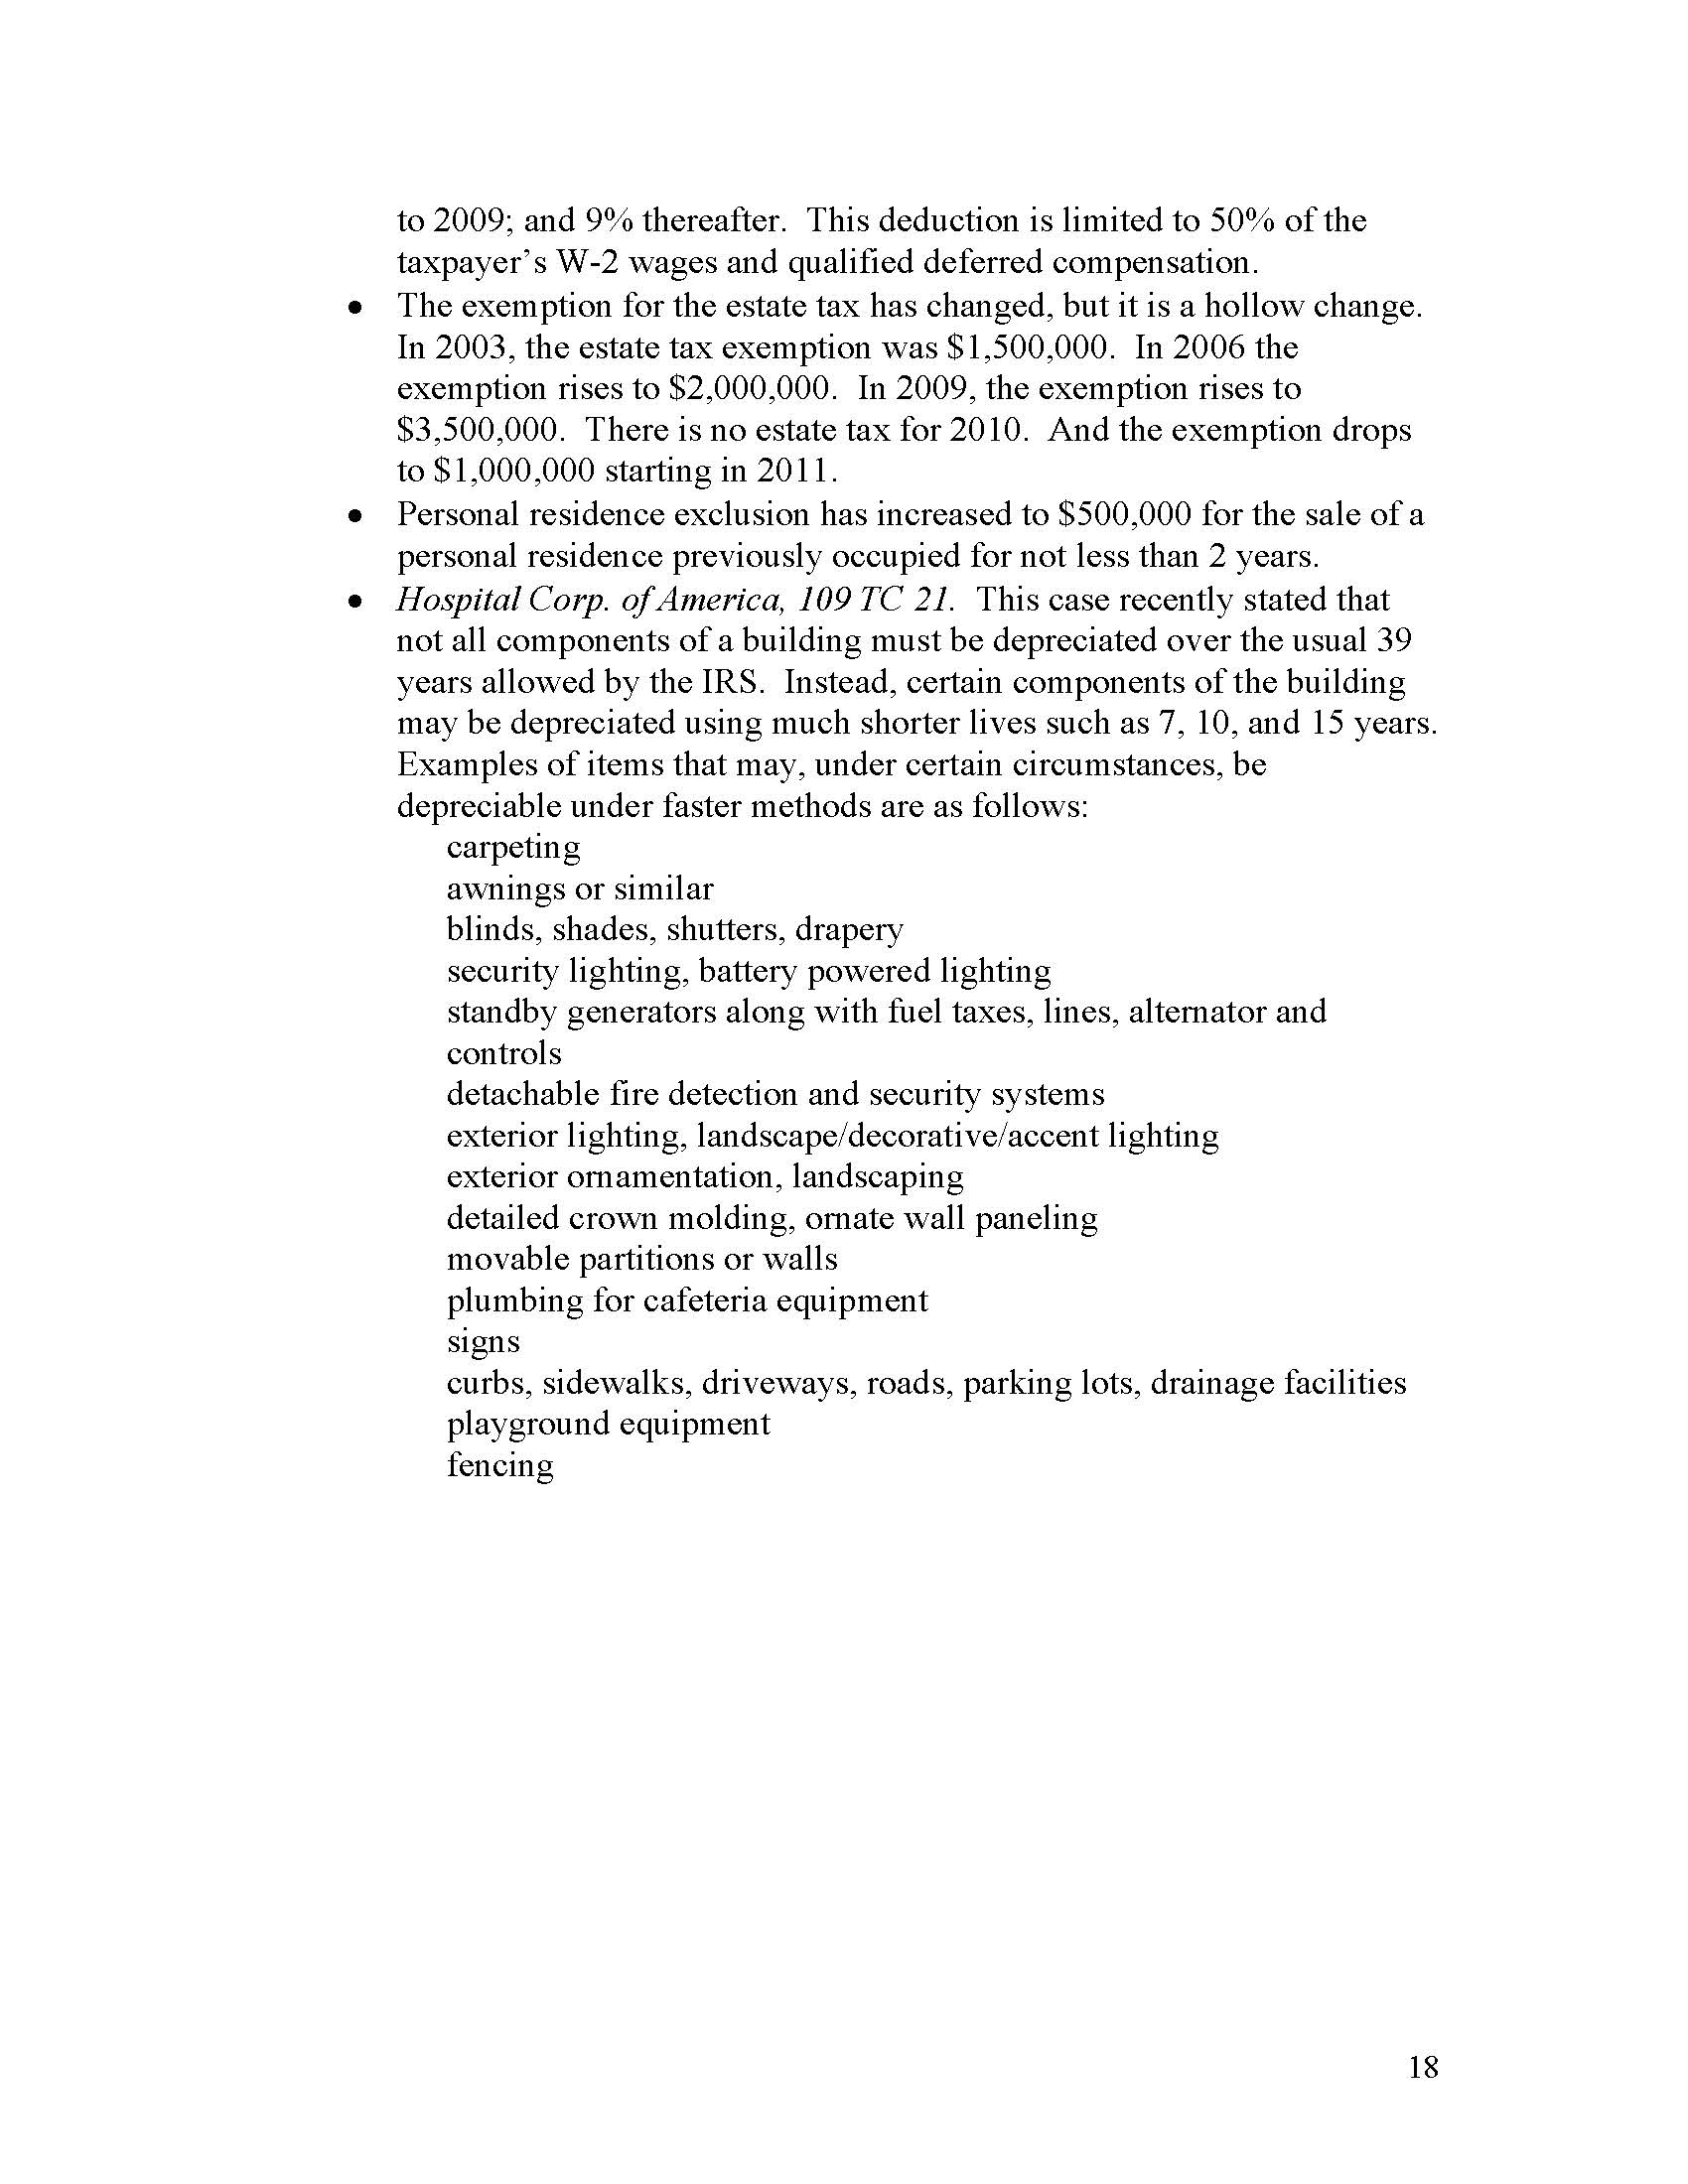 construction-business-structure-how-to-protect-your-equity_Page_18.jpg